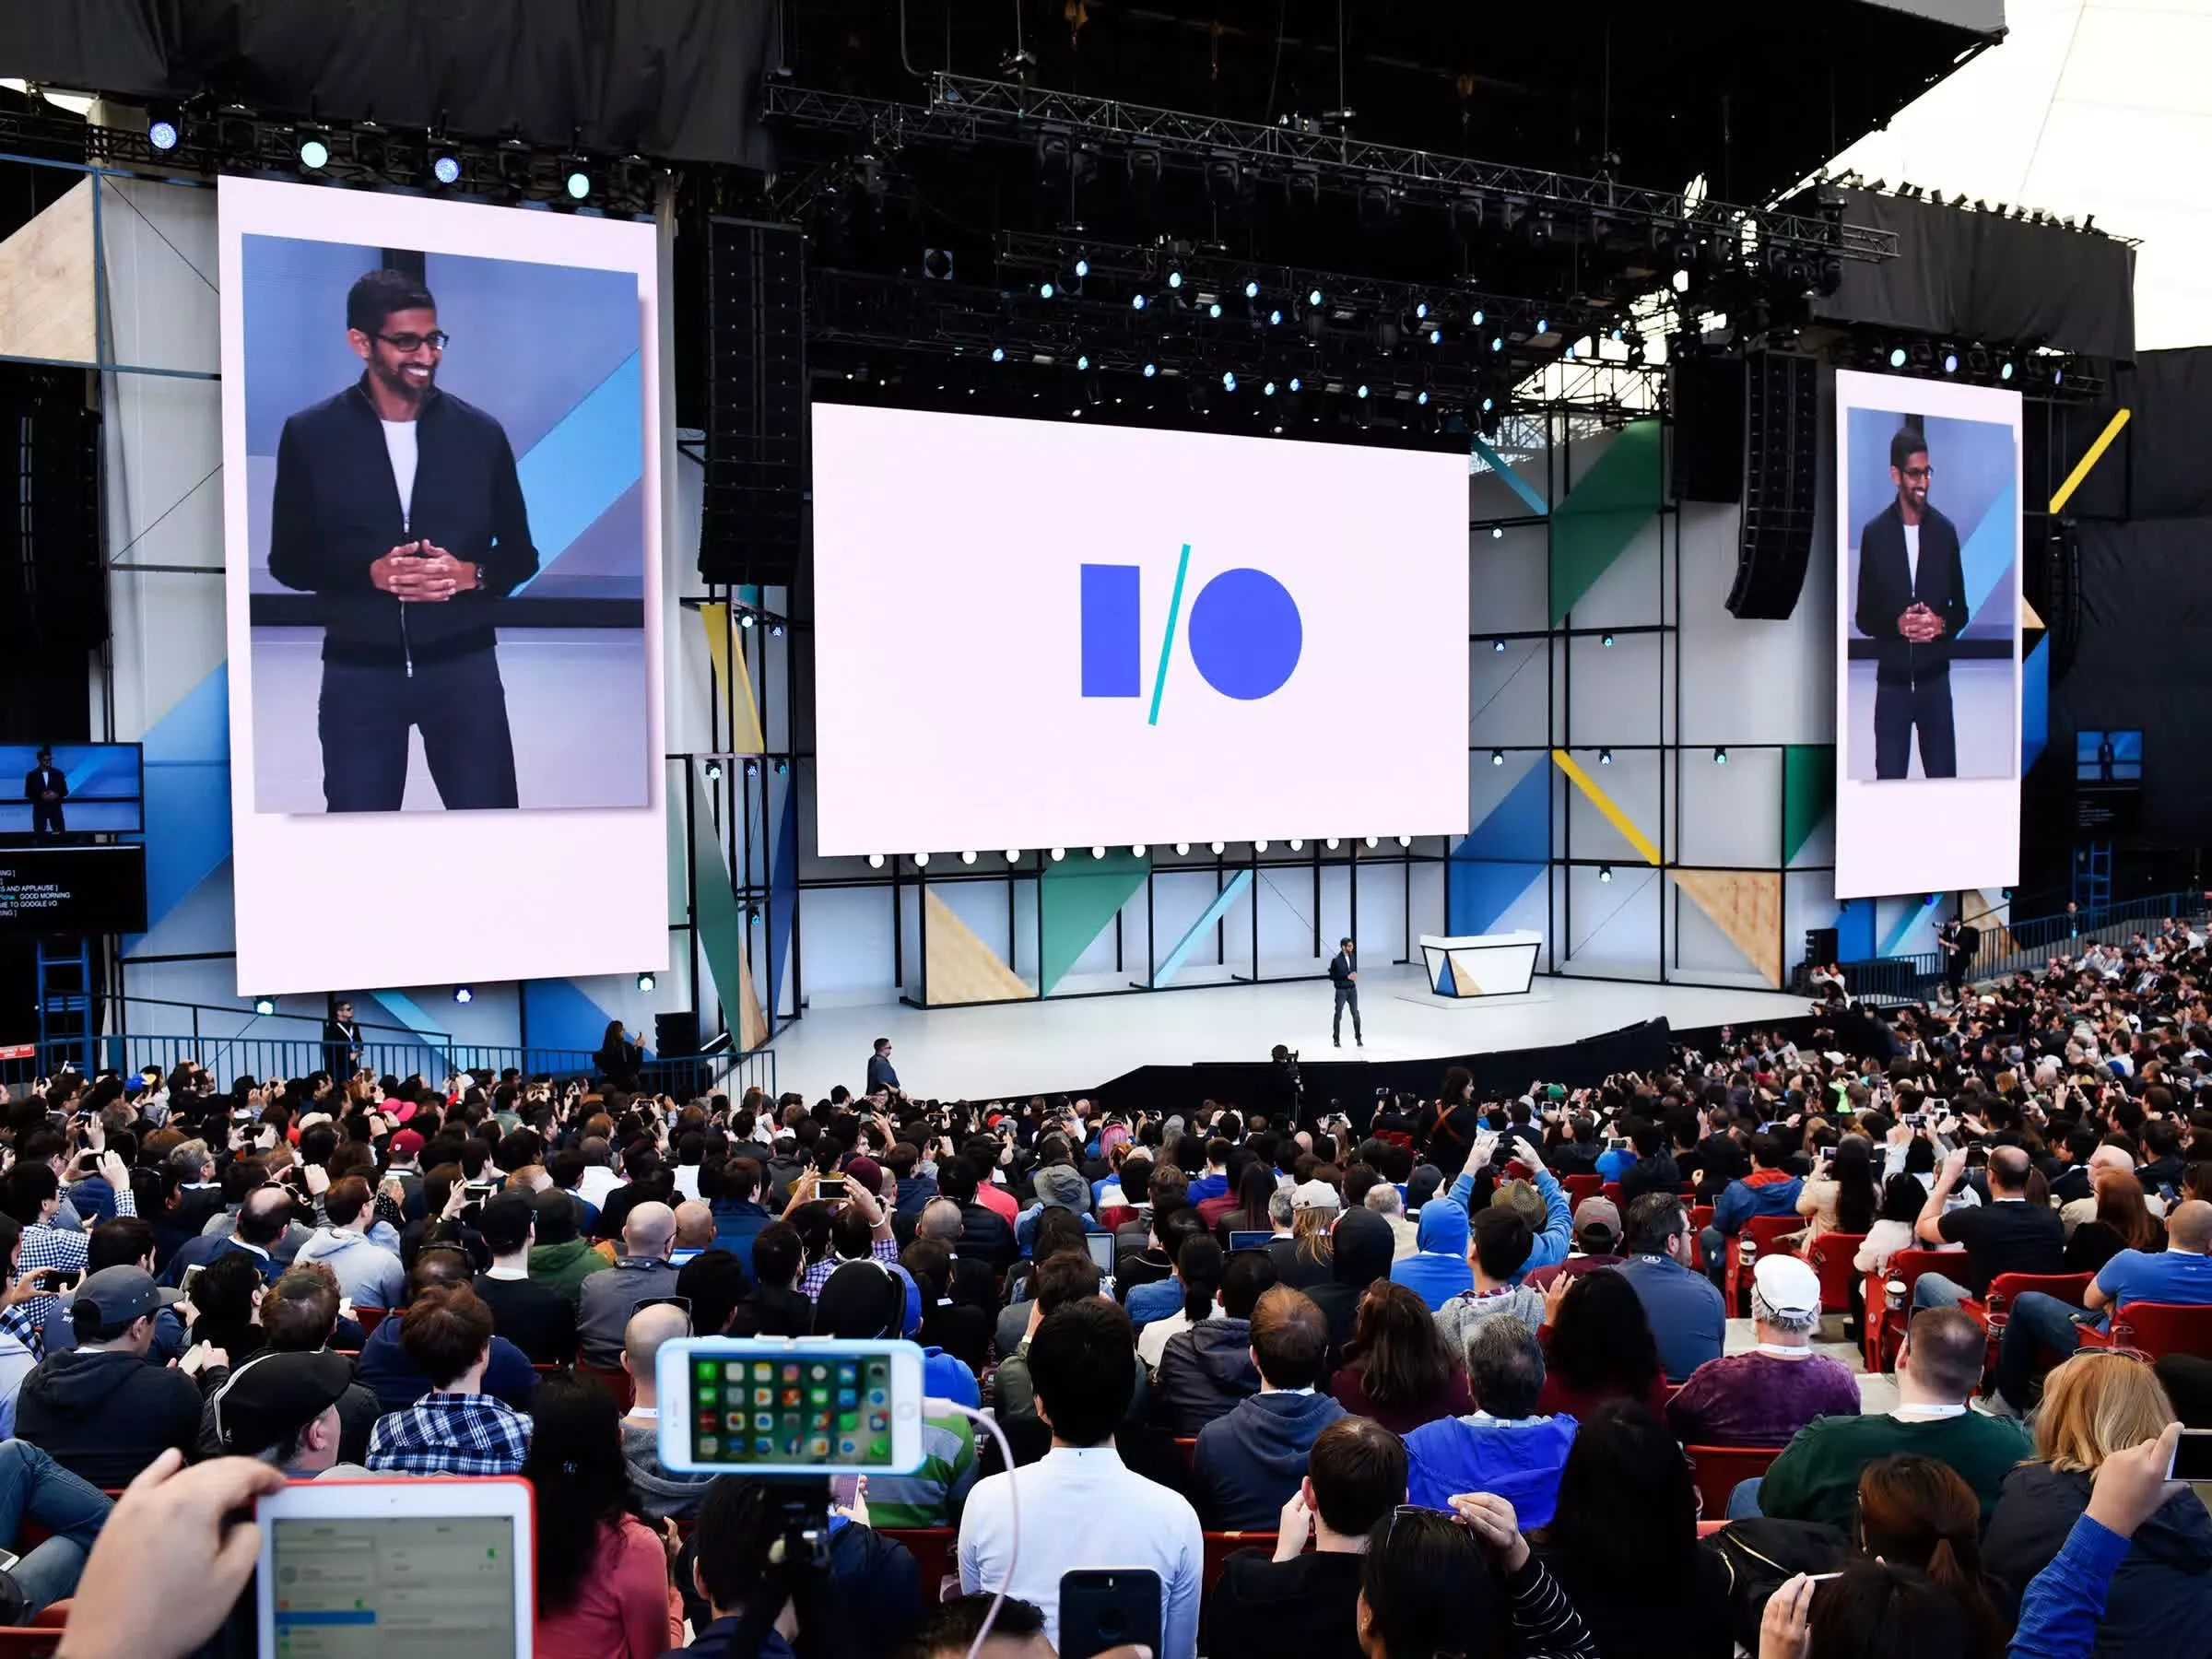 Google I/O returns on May 18 as an online-only event, will be free for all to attend